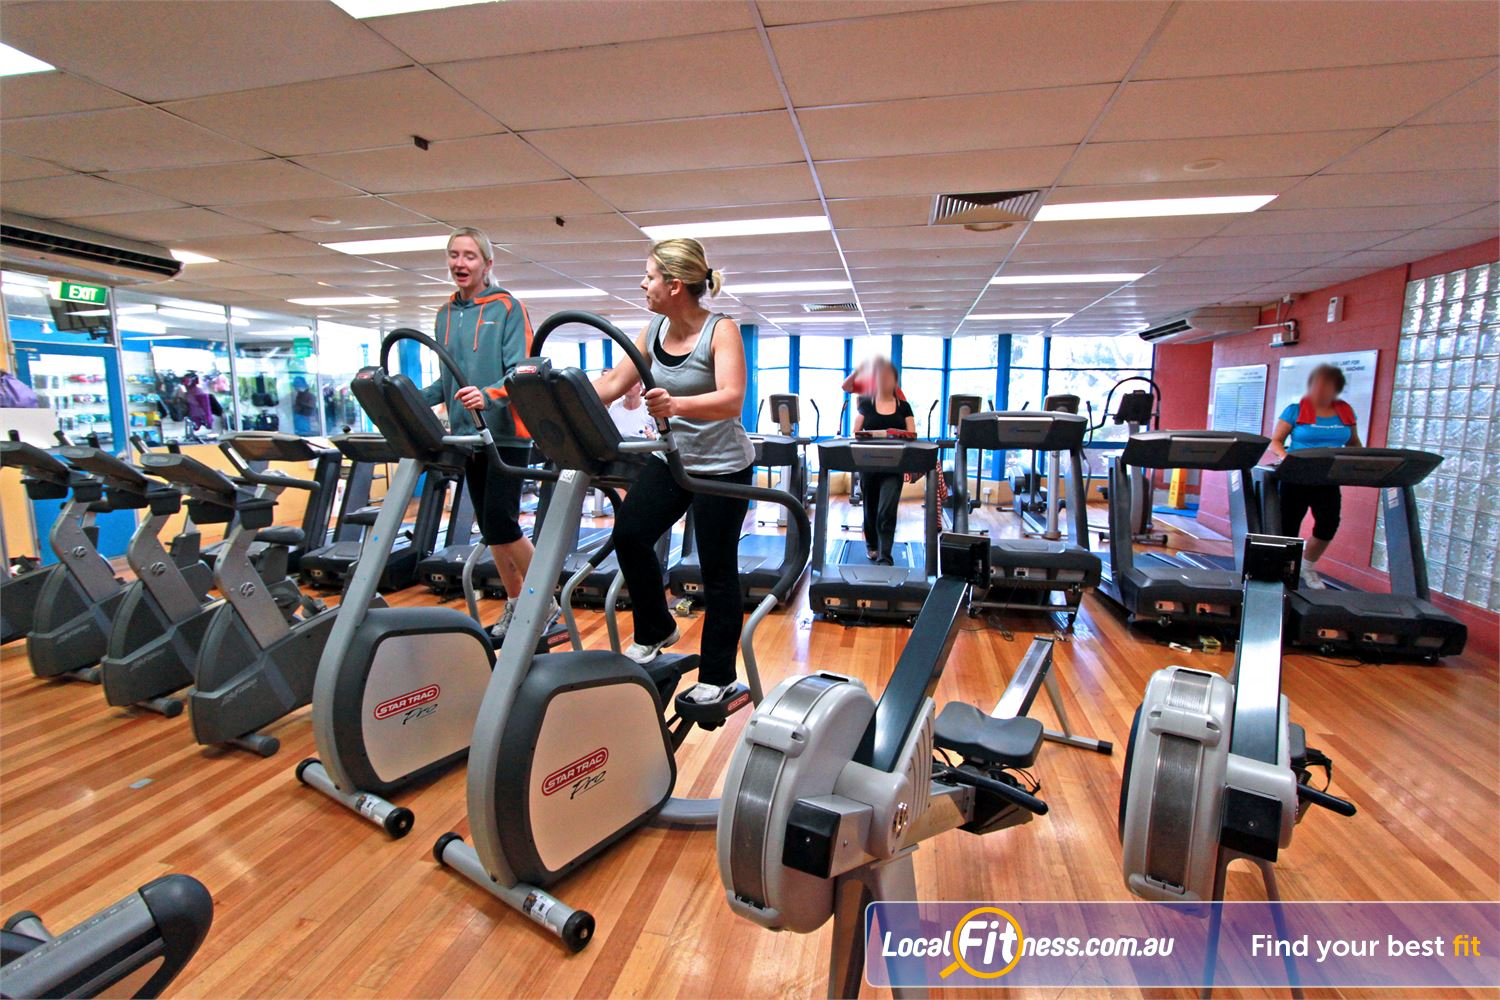 East Keilor Leisure Centre Near Niddrie Enjoy variety with cycle bikes, rowers, steppers and more.